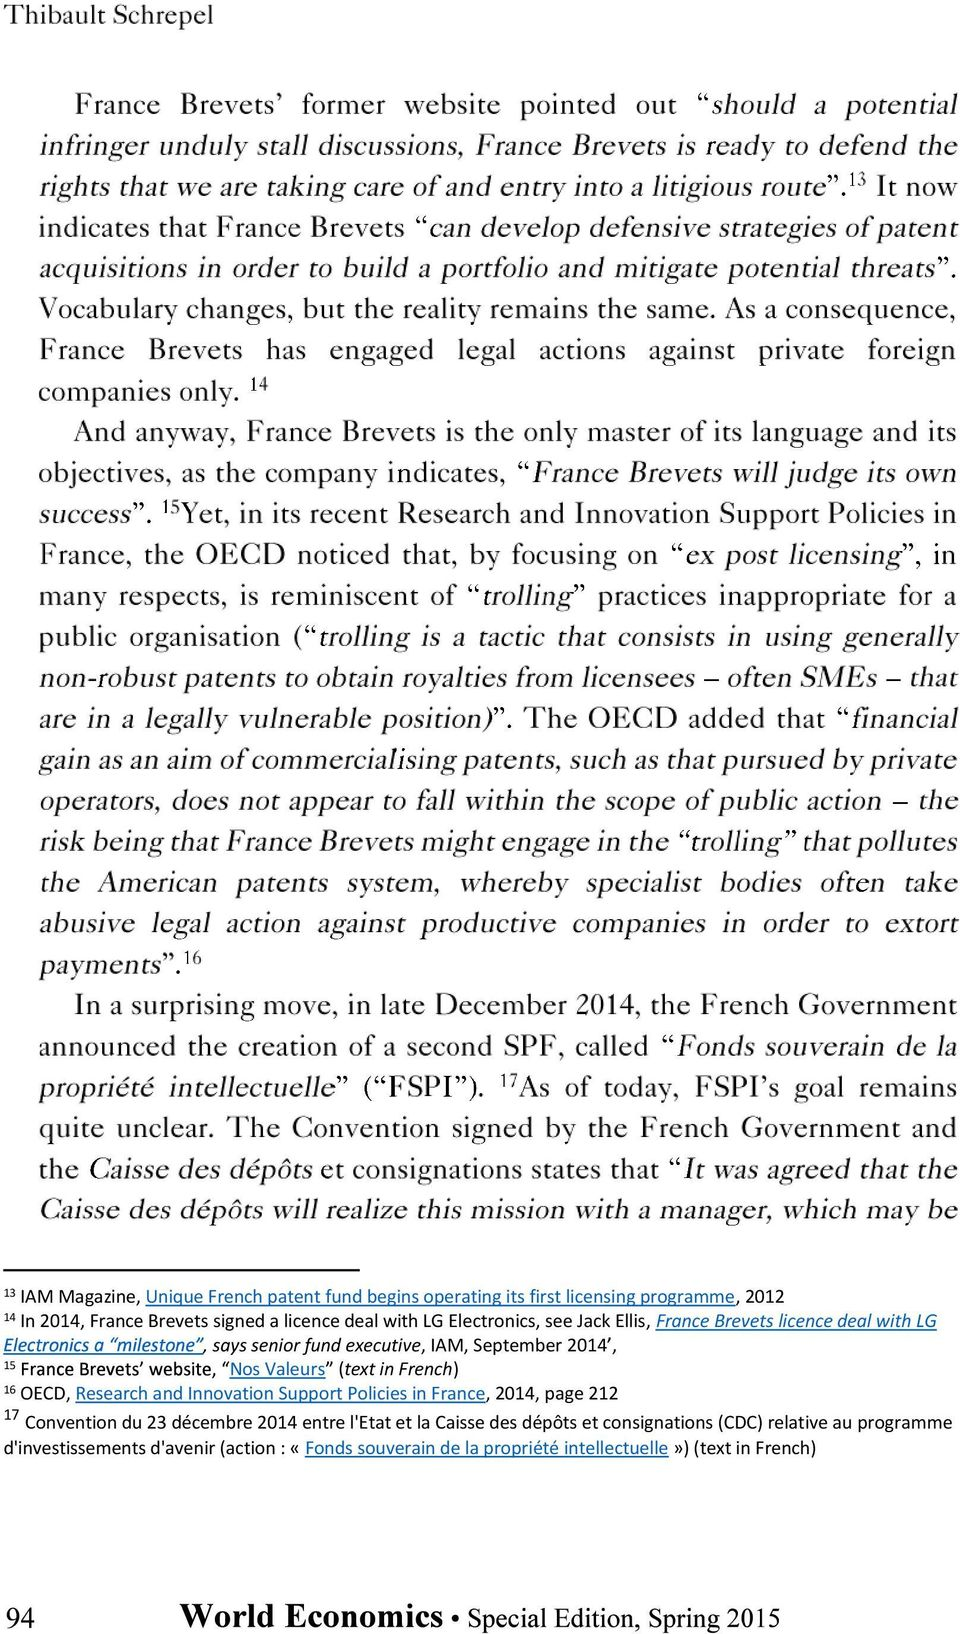 French) 16 OECD, Research and Innovation Support Policies in France, 2014, page 212 17 Convention du 23 décembre 2014 entre l'etat et la Caisse des